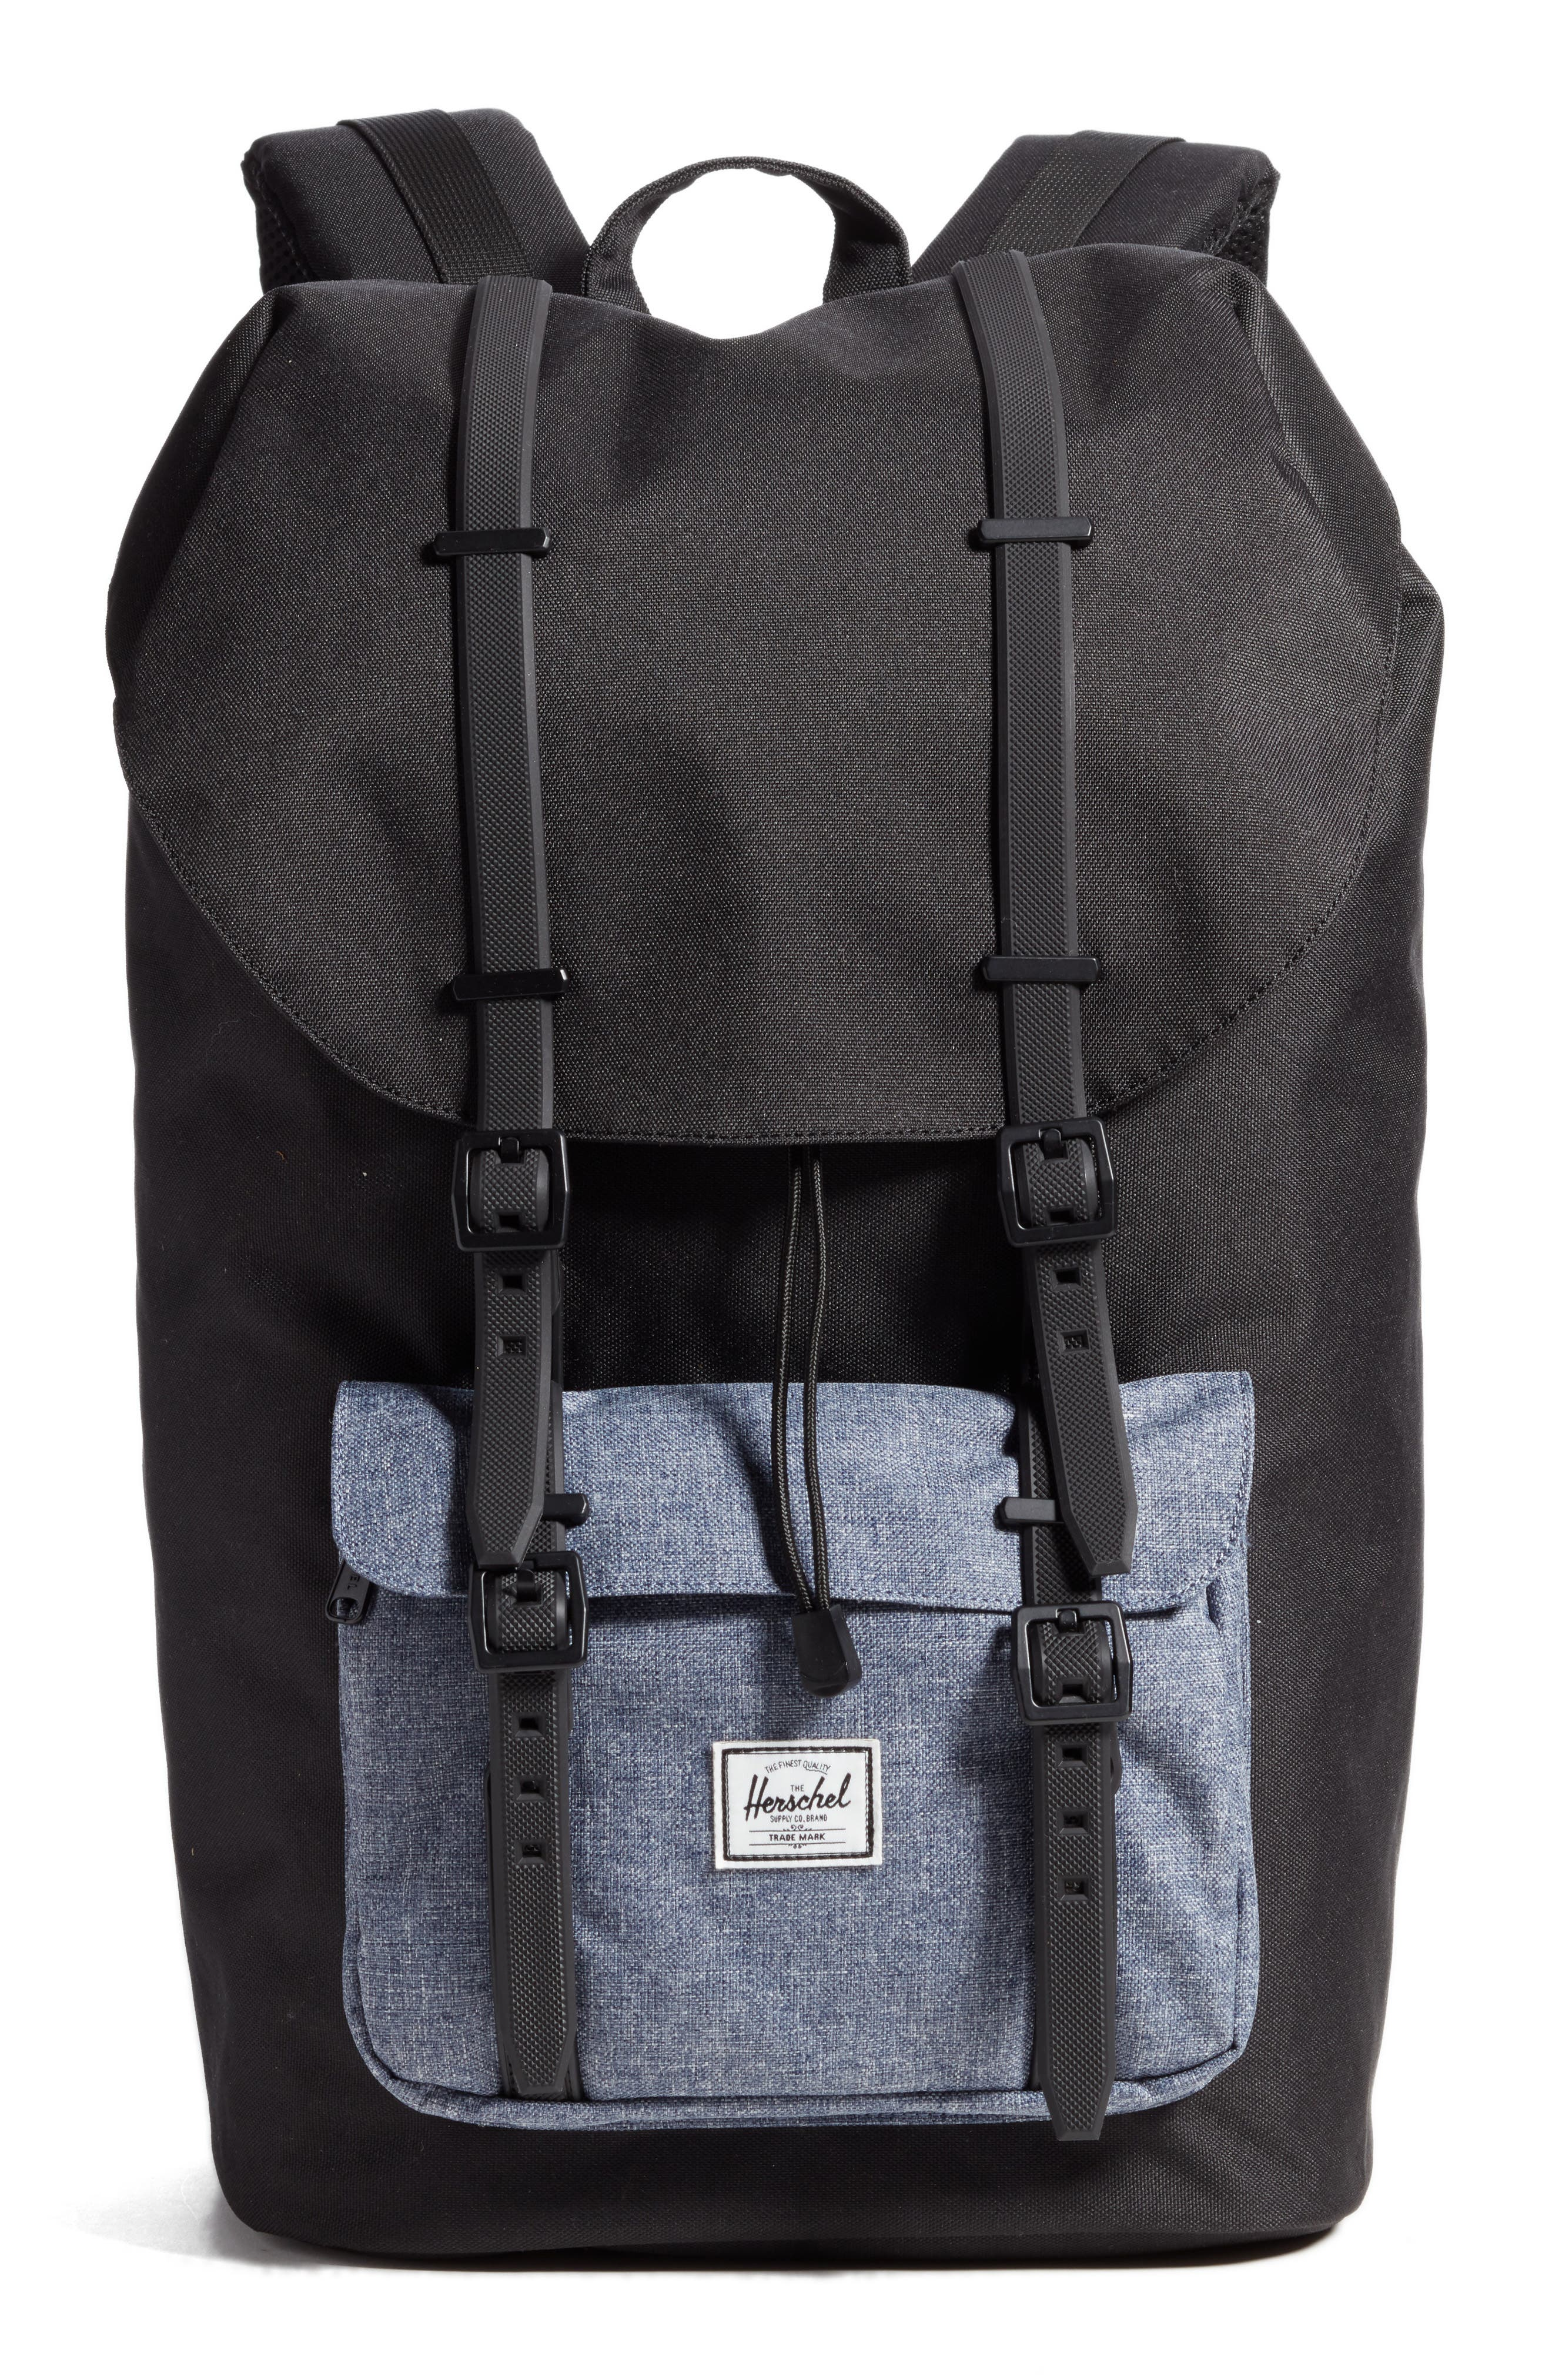 Little America - Chambray Backpack,                         Main,                         color, Black/ Dark Chambray